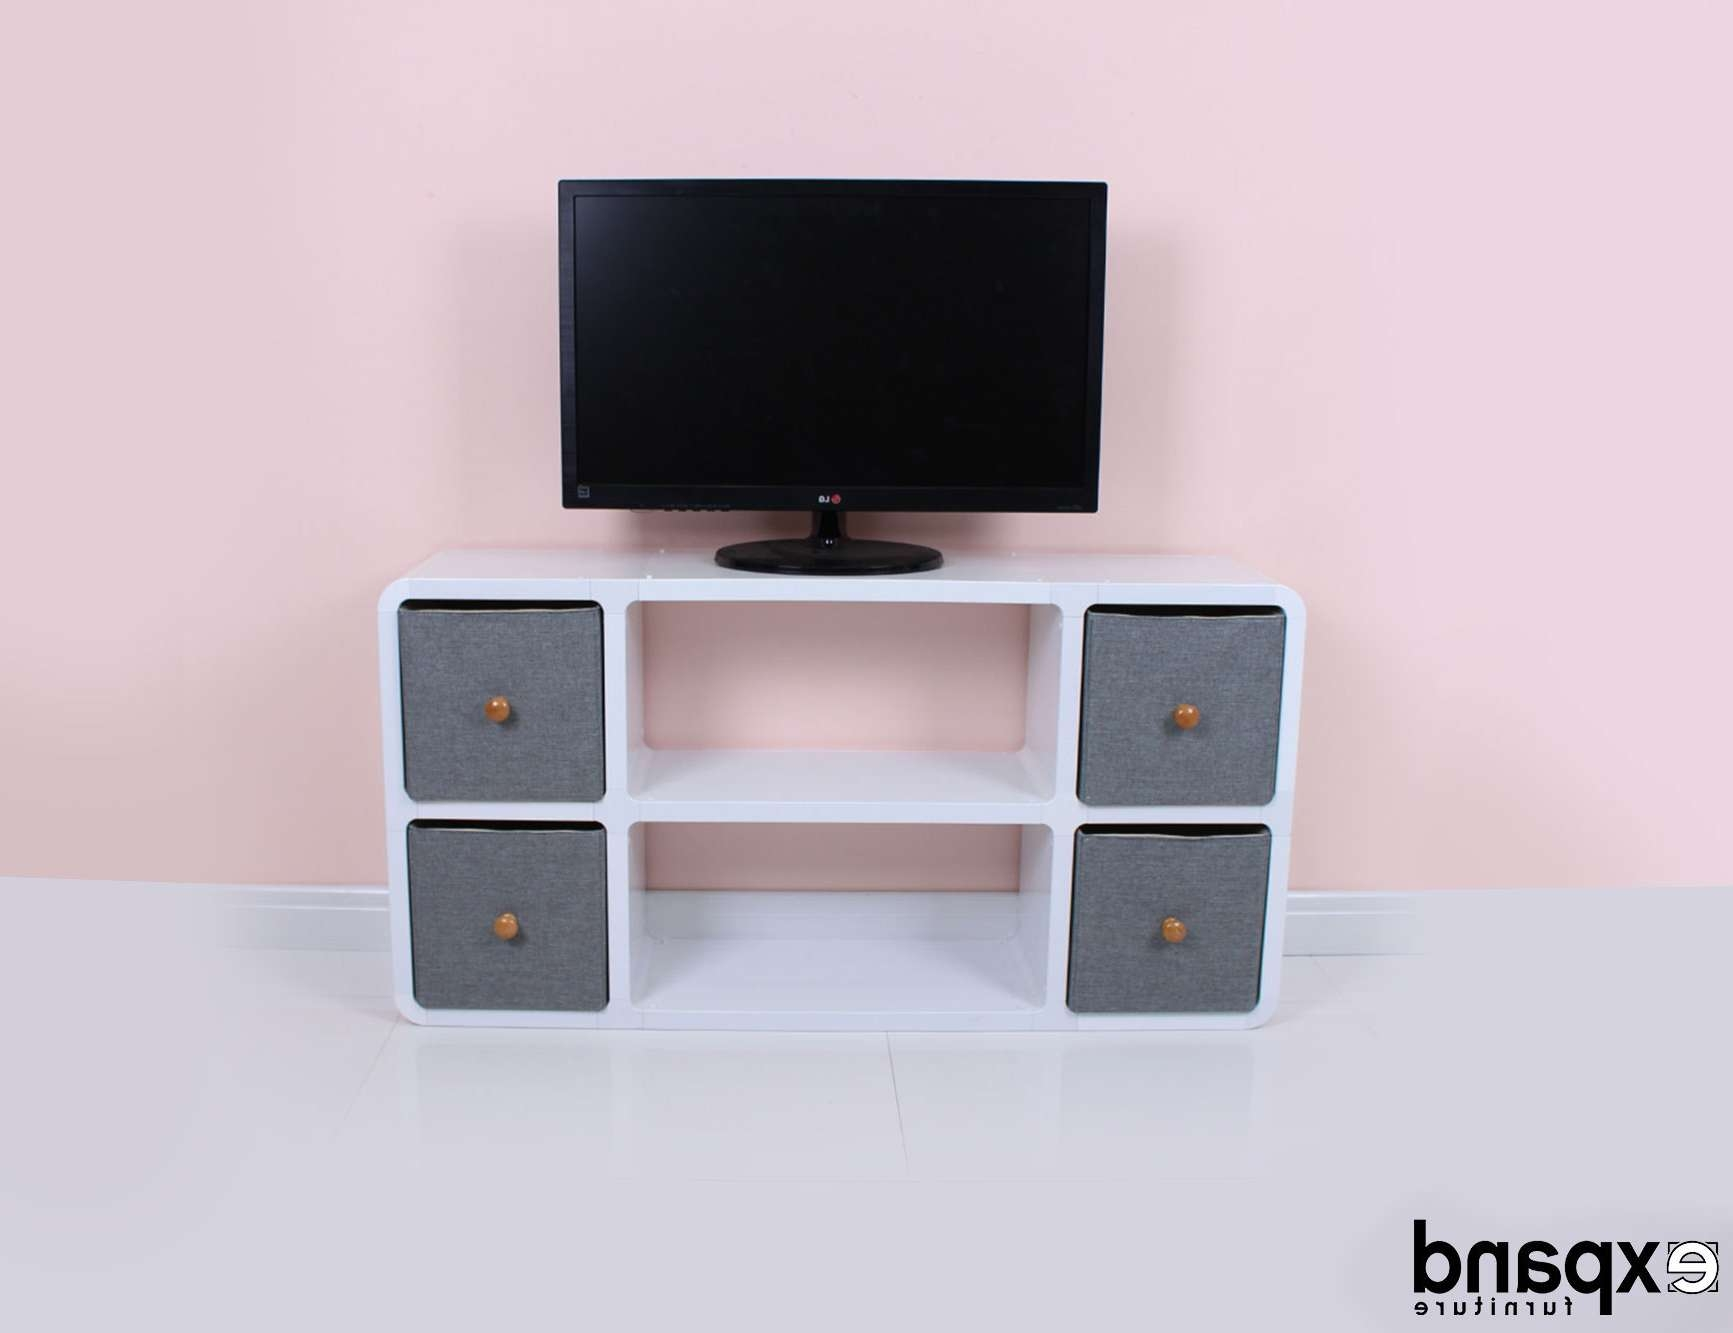 Slim Tv Stand 6 – Made For Modern Thin Tvs |Expand Inside Skinny Tv Stands (View 6 of 15)